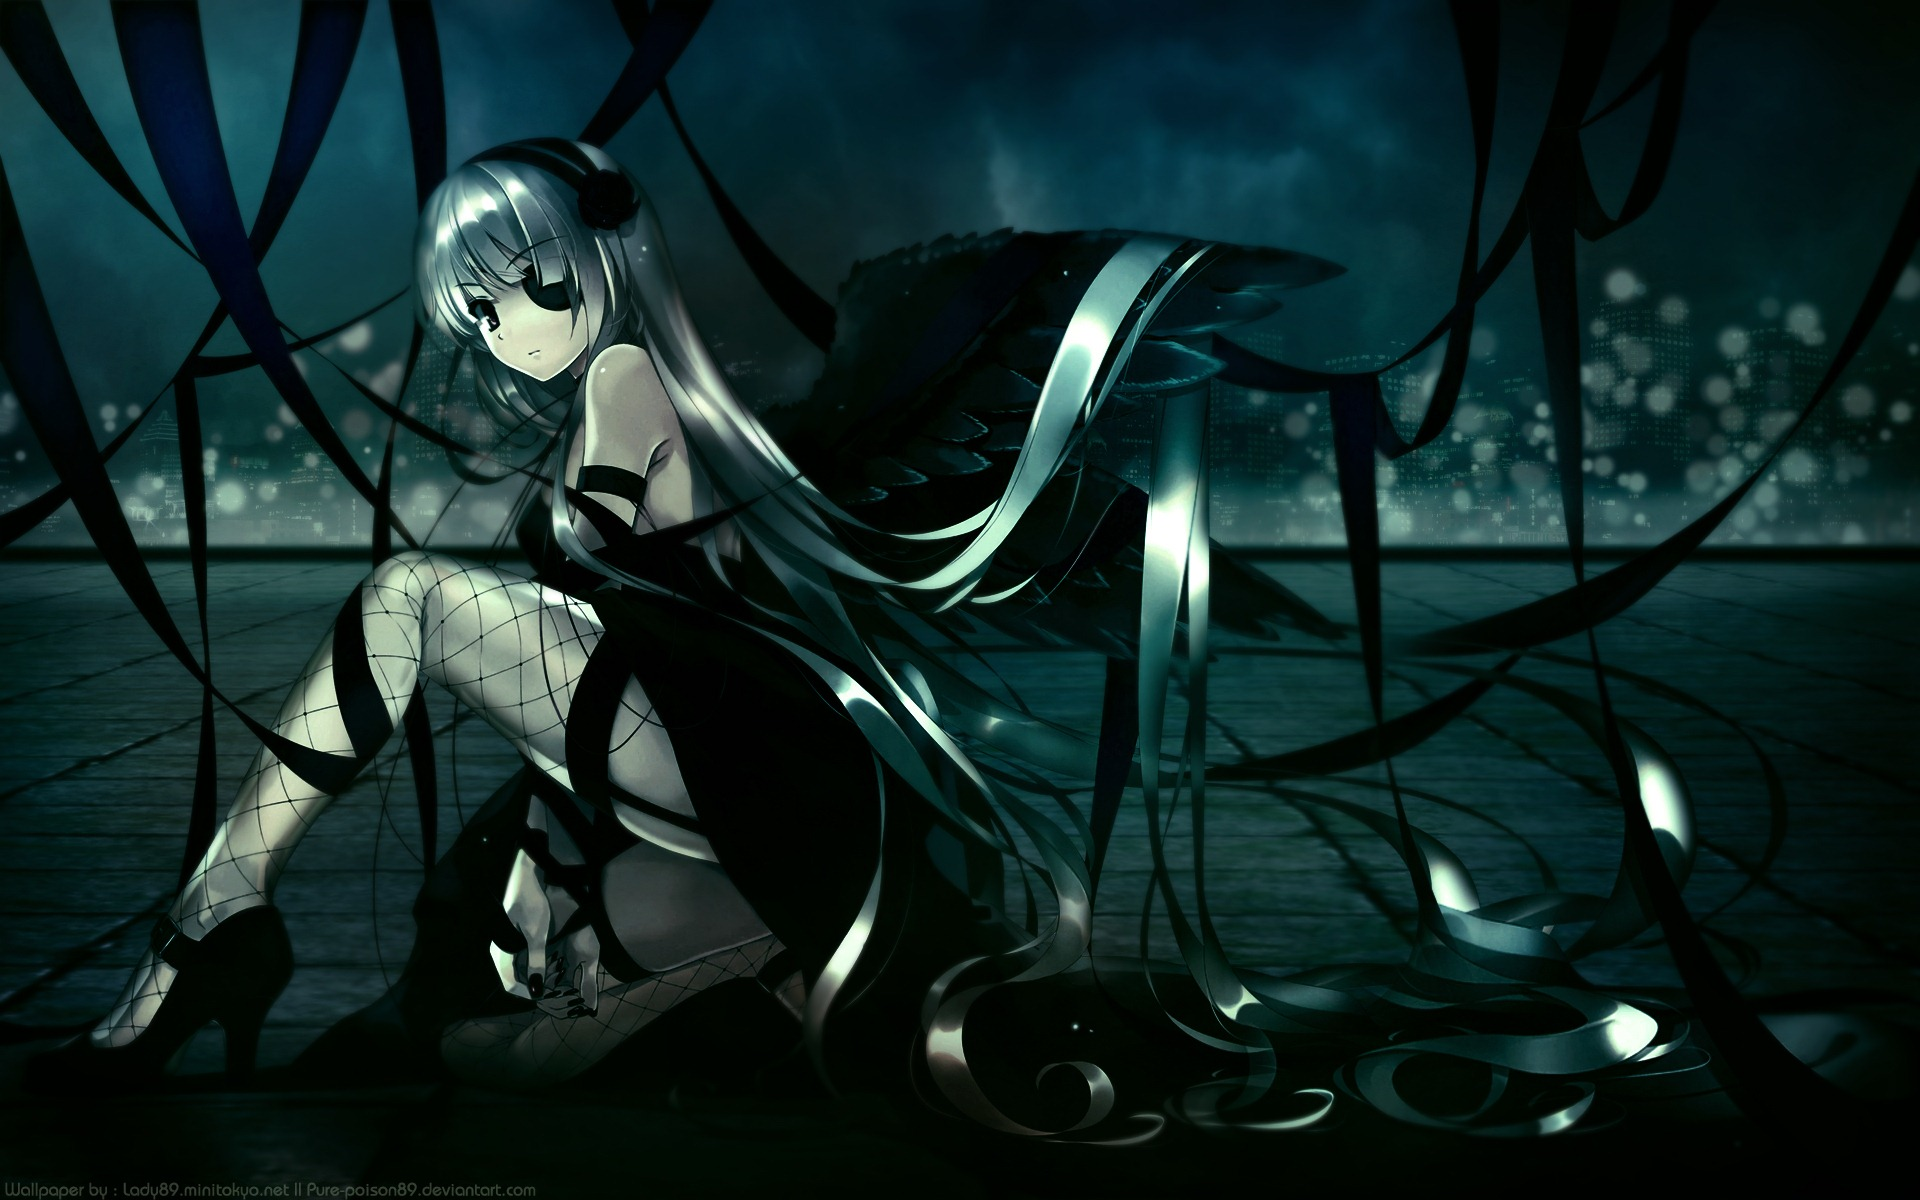 dark anime wallpaper hd - sf wallpaper